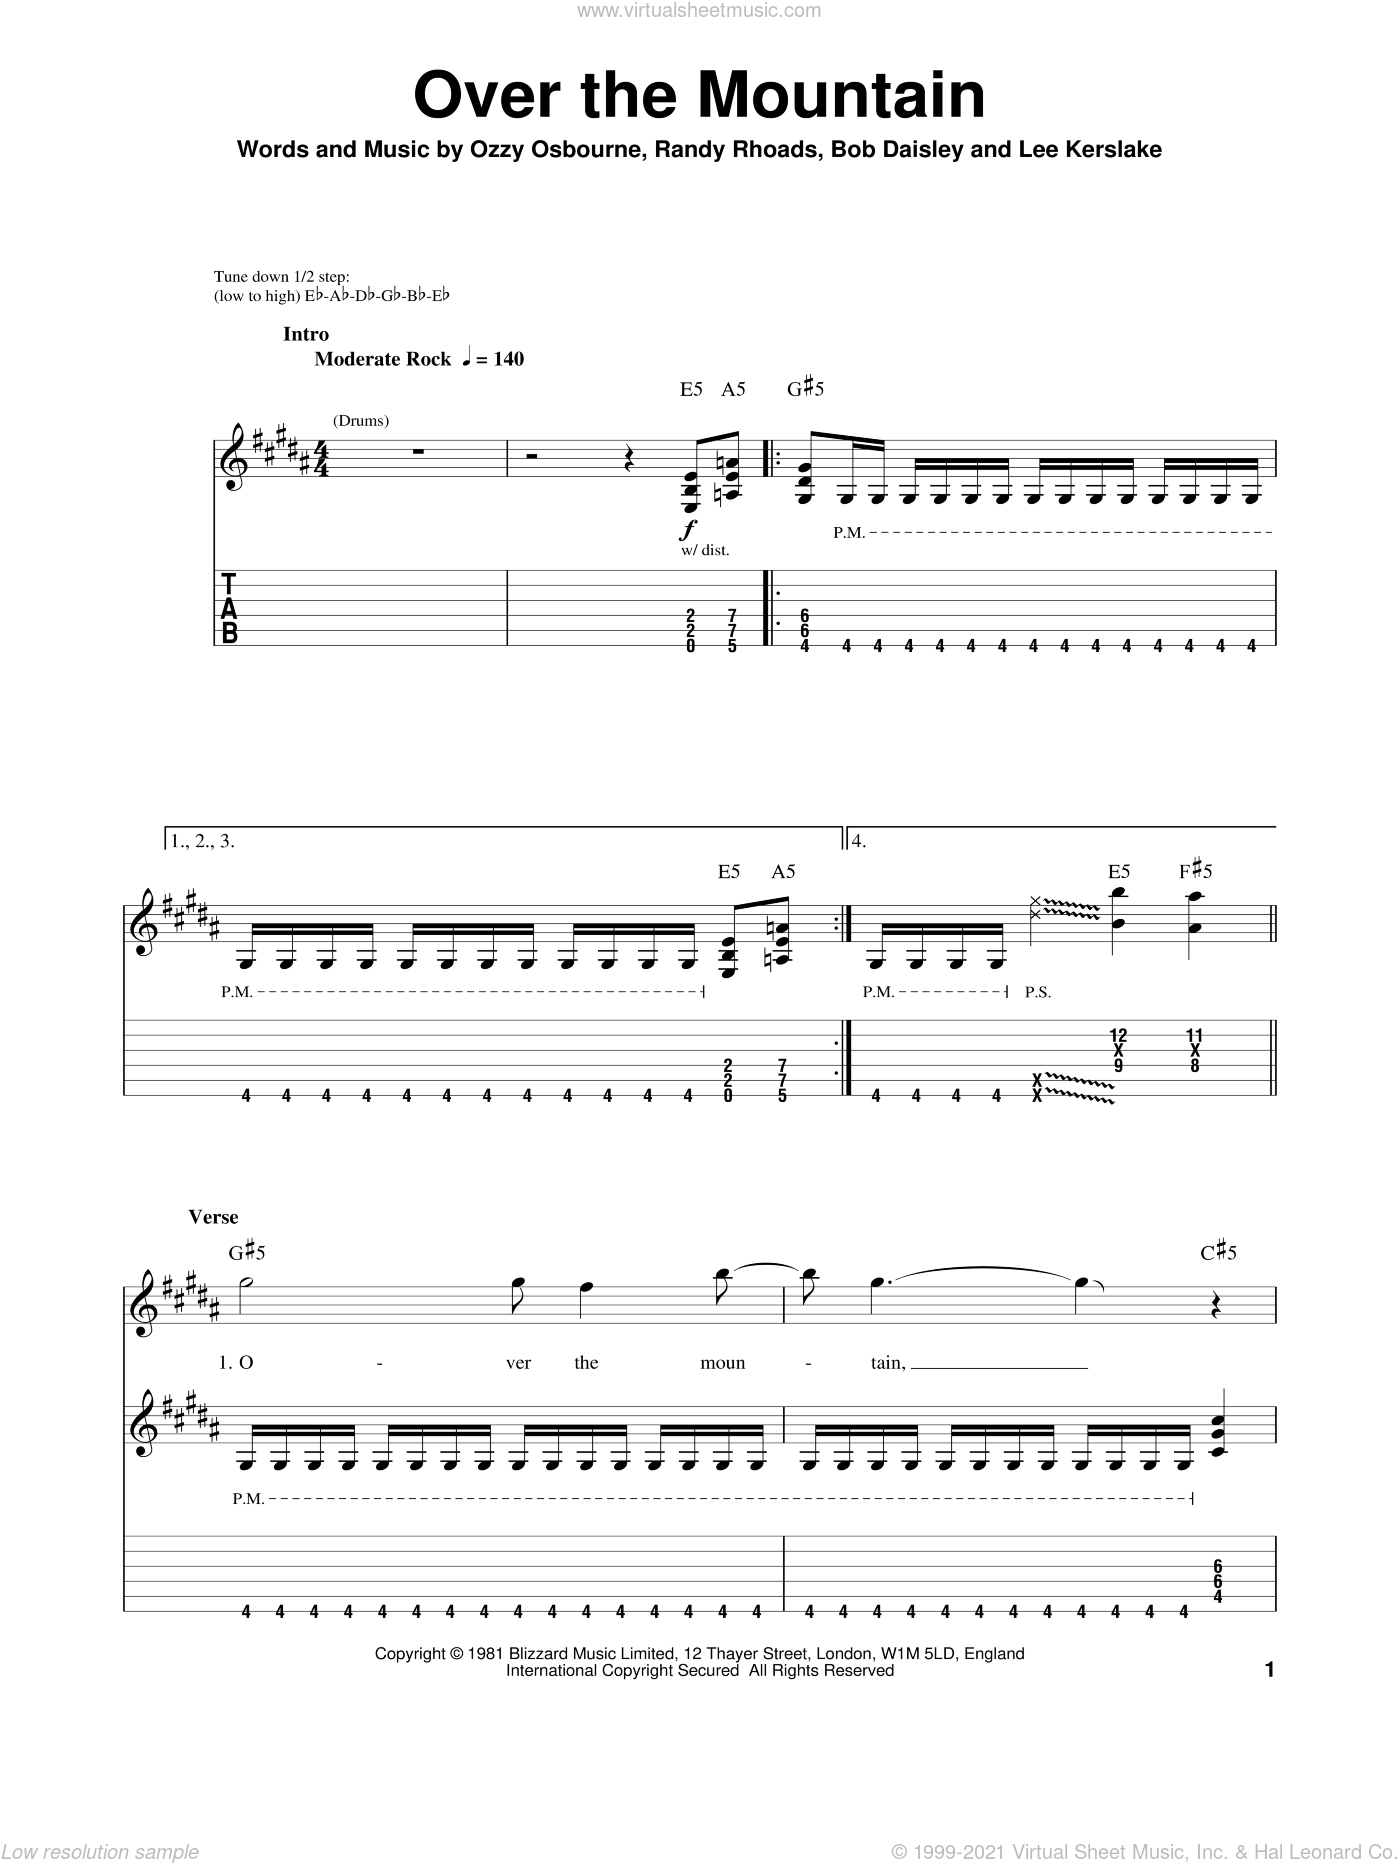 Over The Mountain sheet music for guitar (tablature, play-along) by Randy Rhoads, Bob Daisley and Ozzy Osbourne. Score Image Preview.